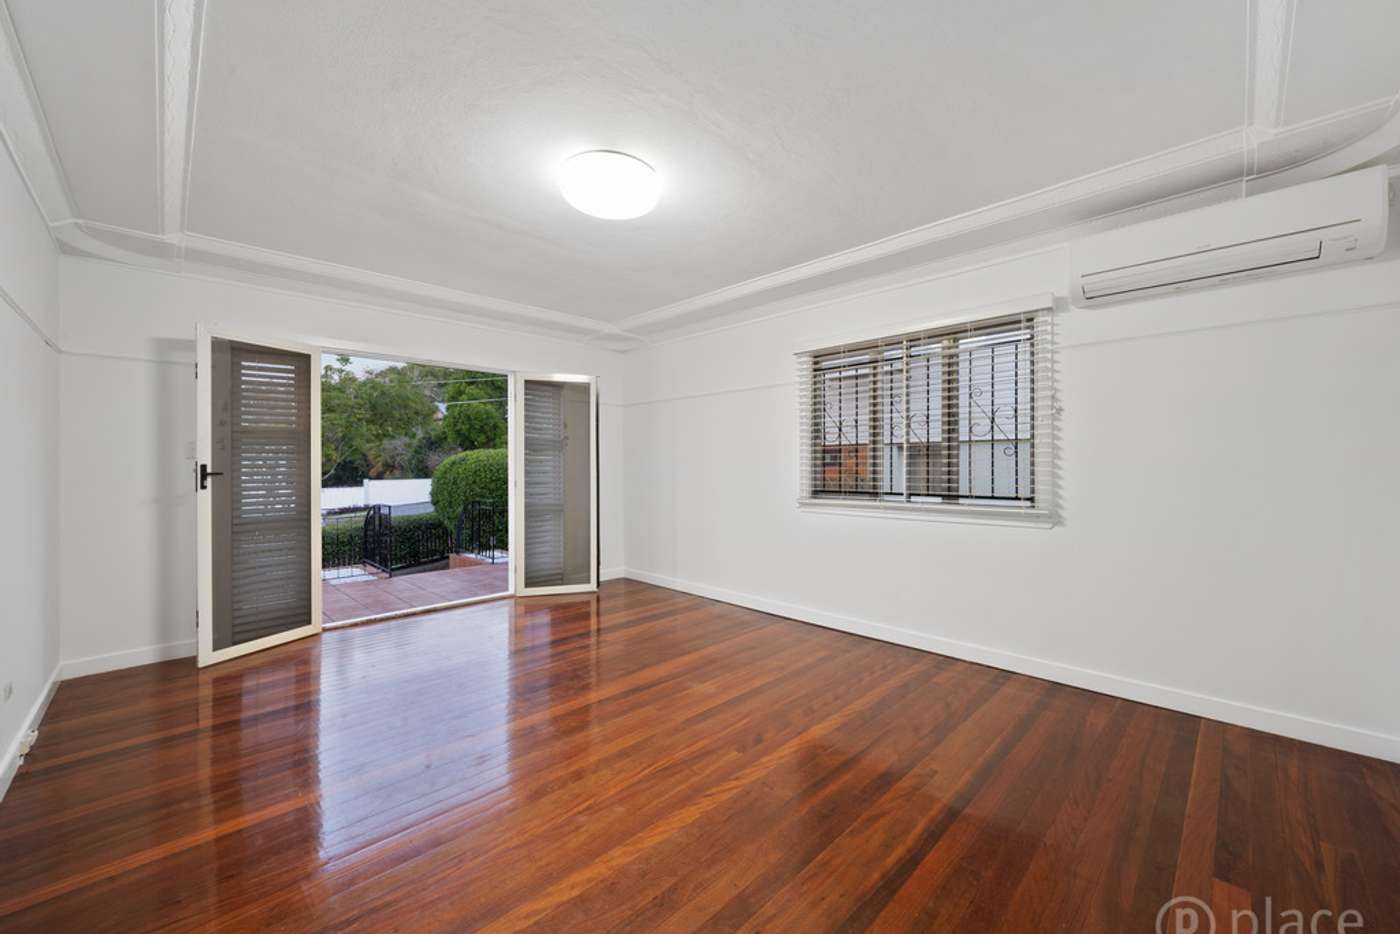 Fifth view of Homely house listing, 87 Peach Street, Greenslopes QLD 4120